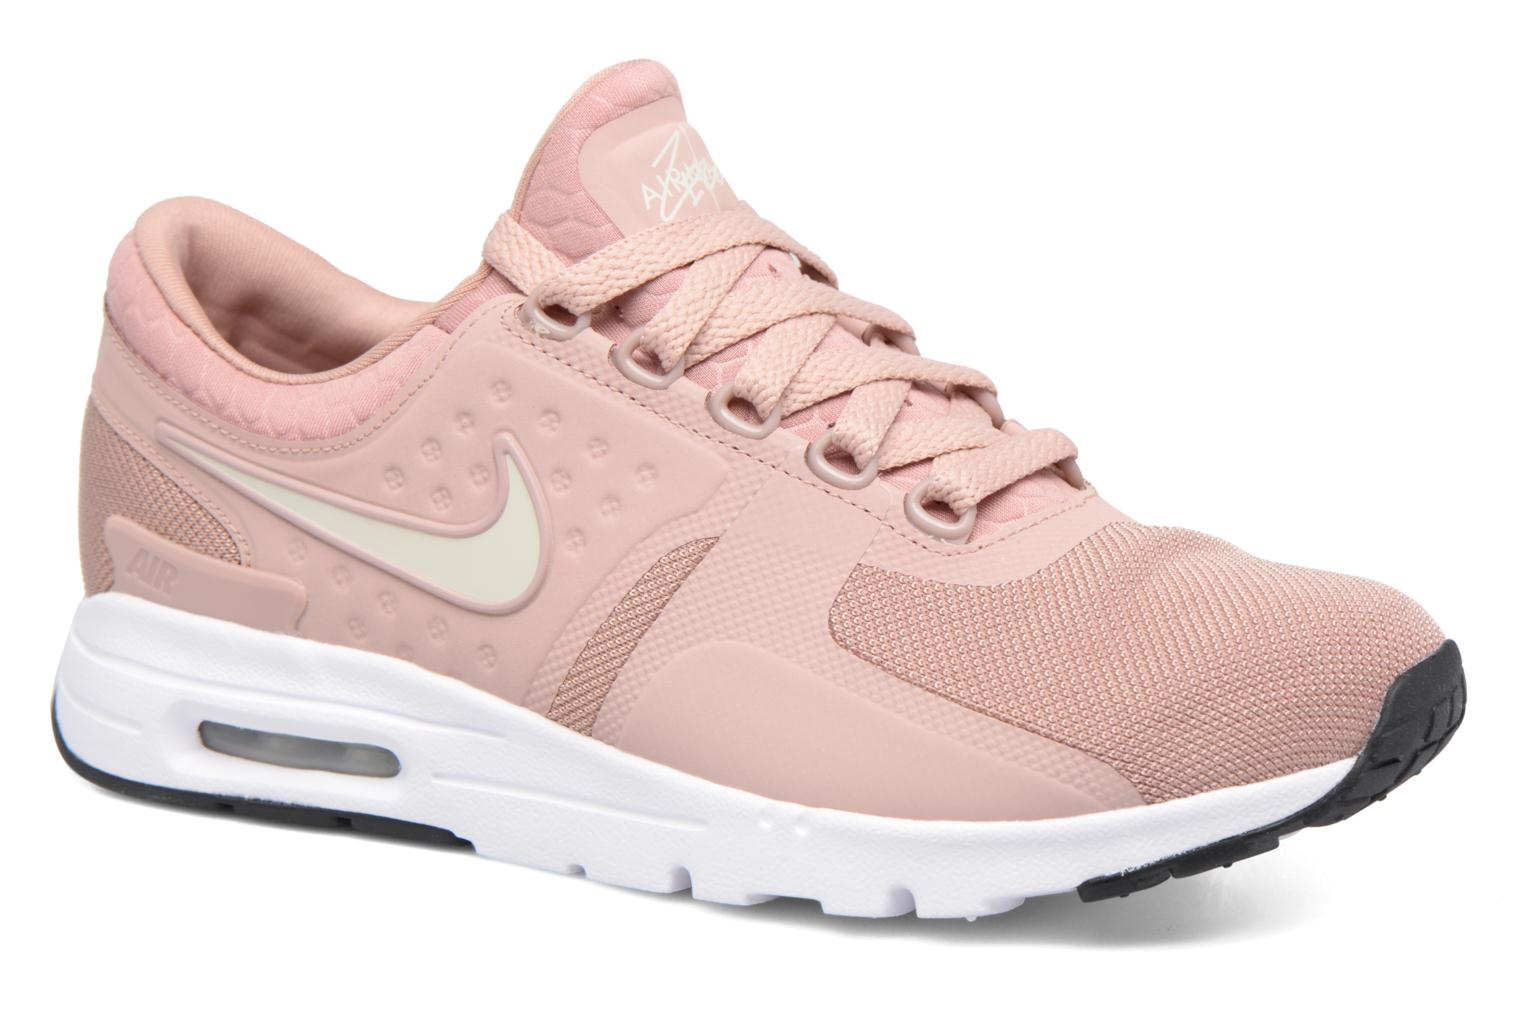 W Air Max Zero Particle Pink/Light Bone-Black-White